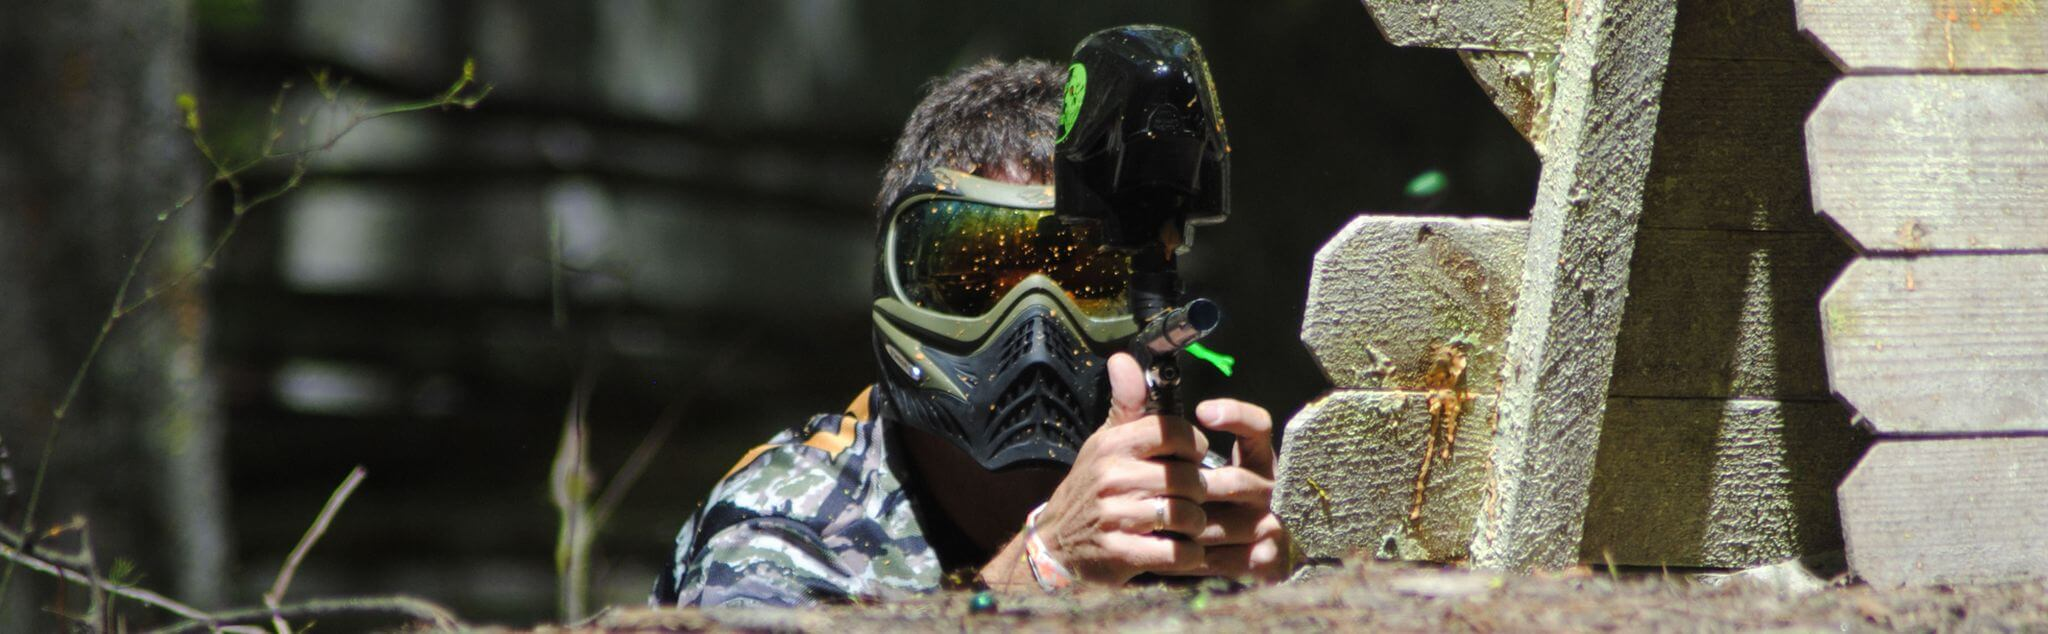 Paintball dans Gard